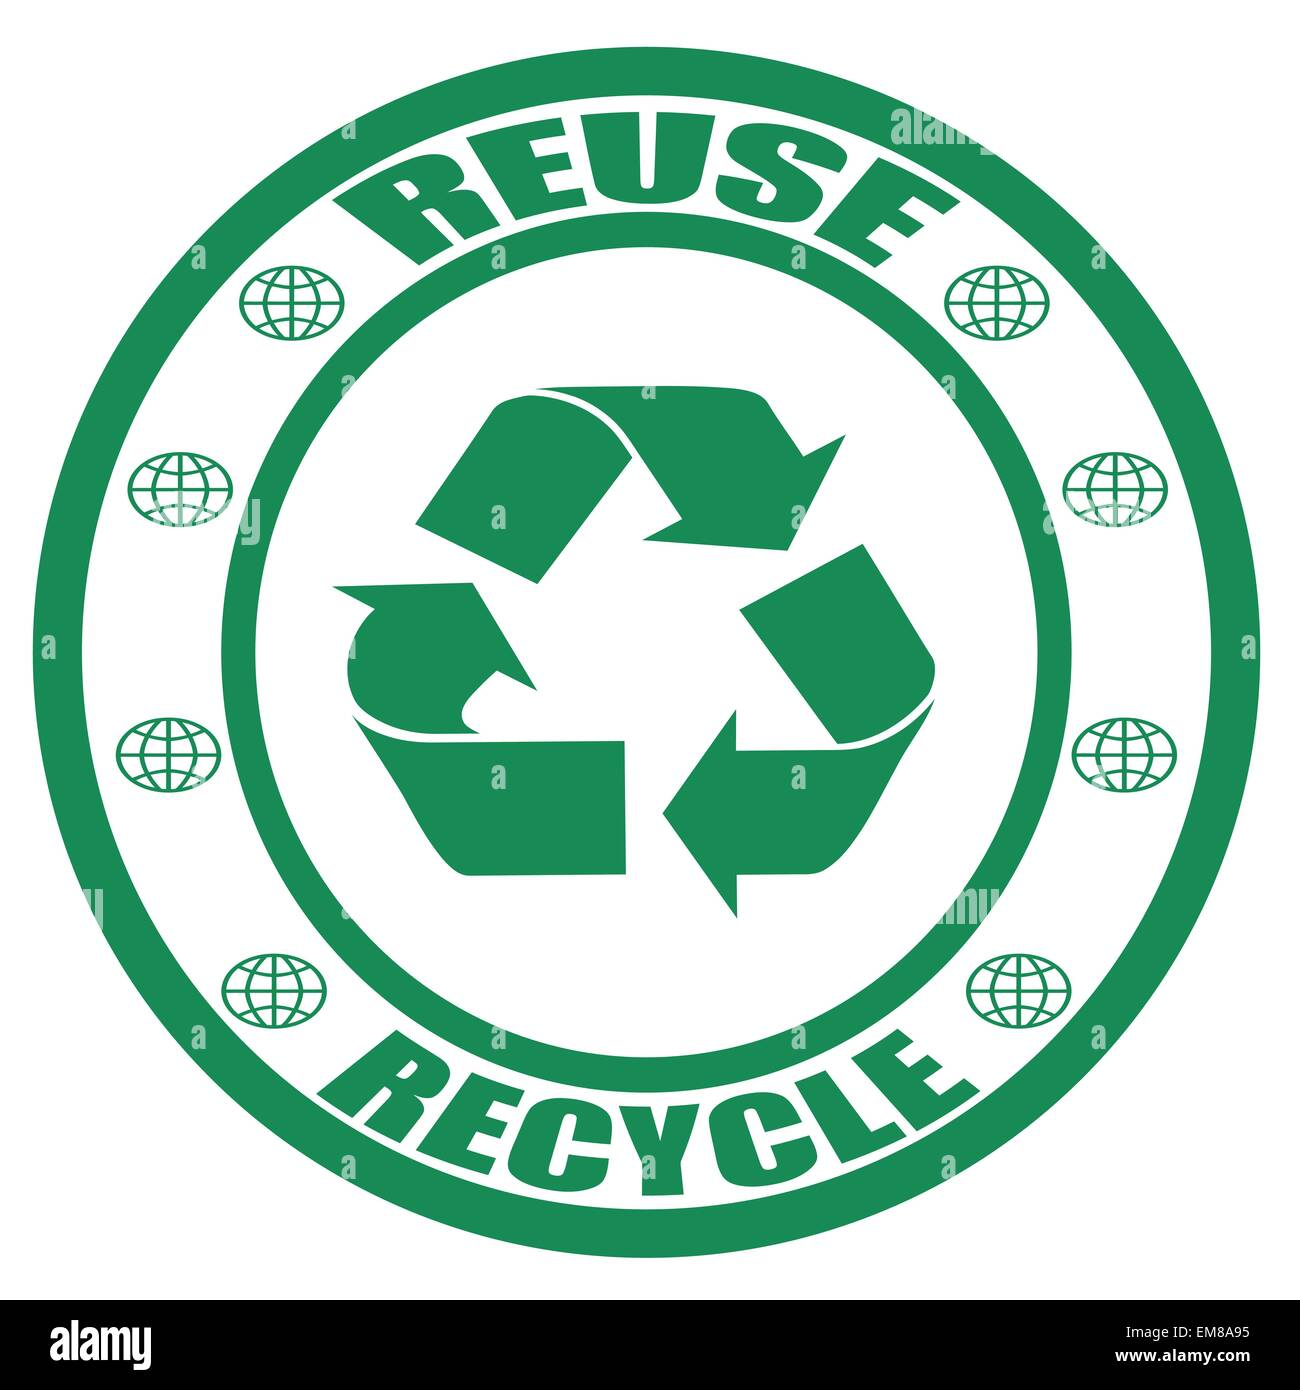 Reuse and recycle - Stock Image